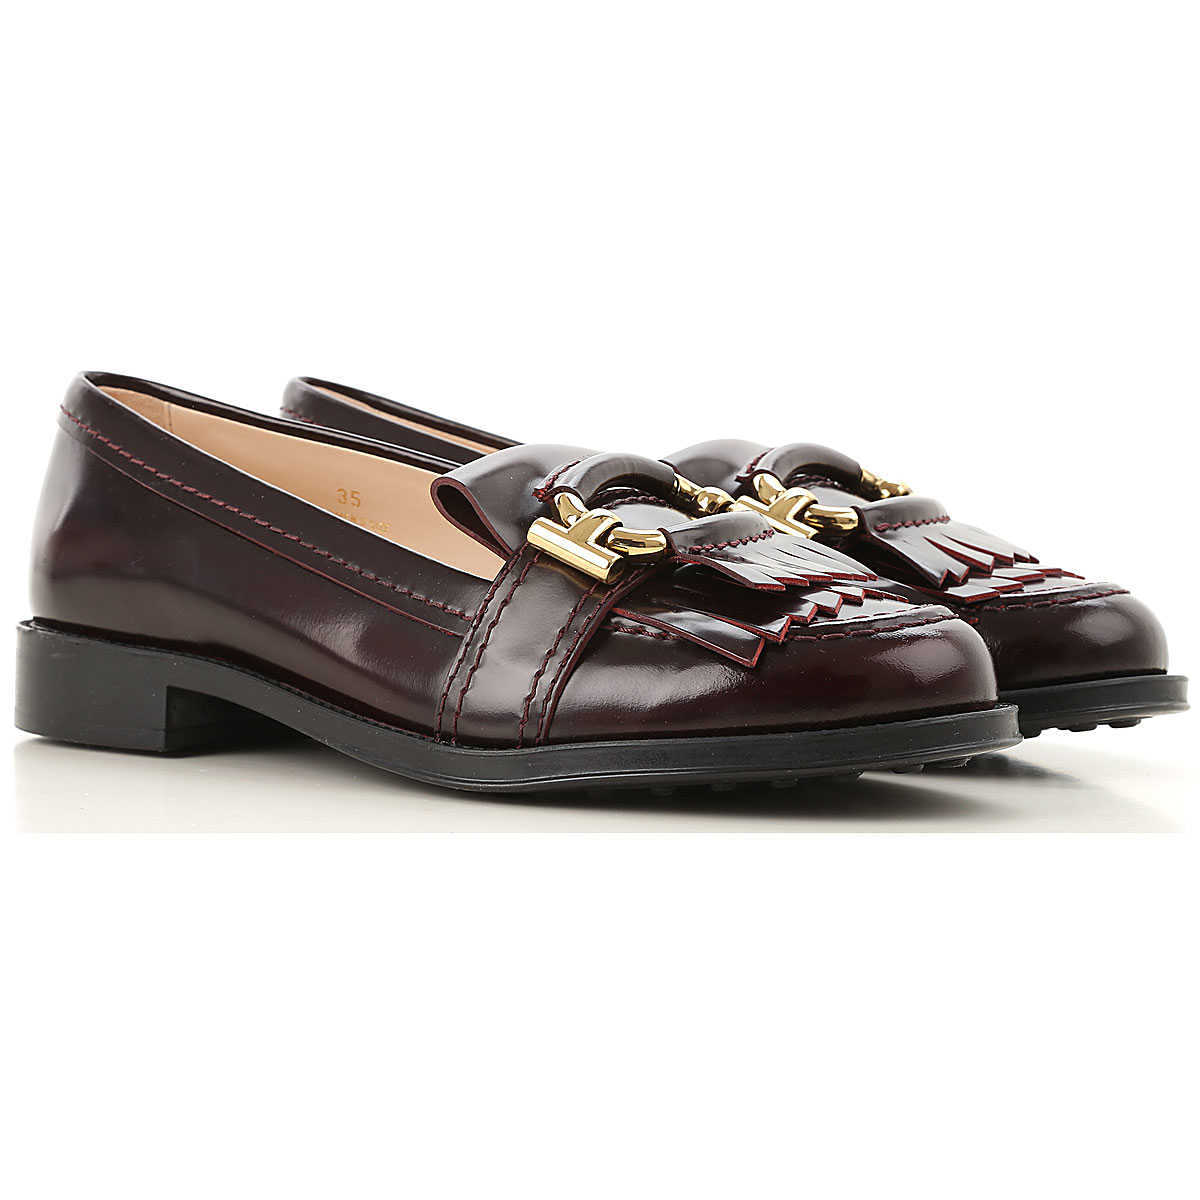 Tods Loafers for Women Must Canada - GOOFASH - Womens FLAT SHOES